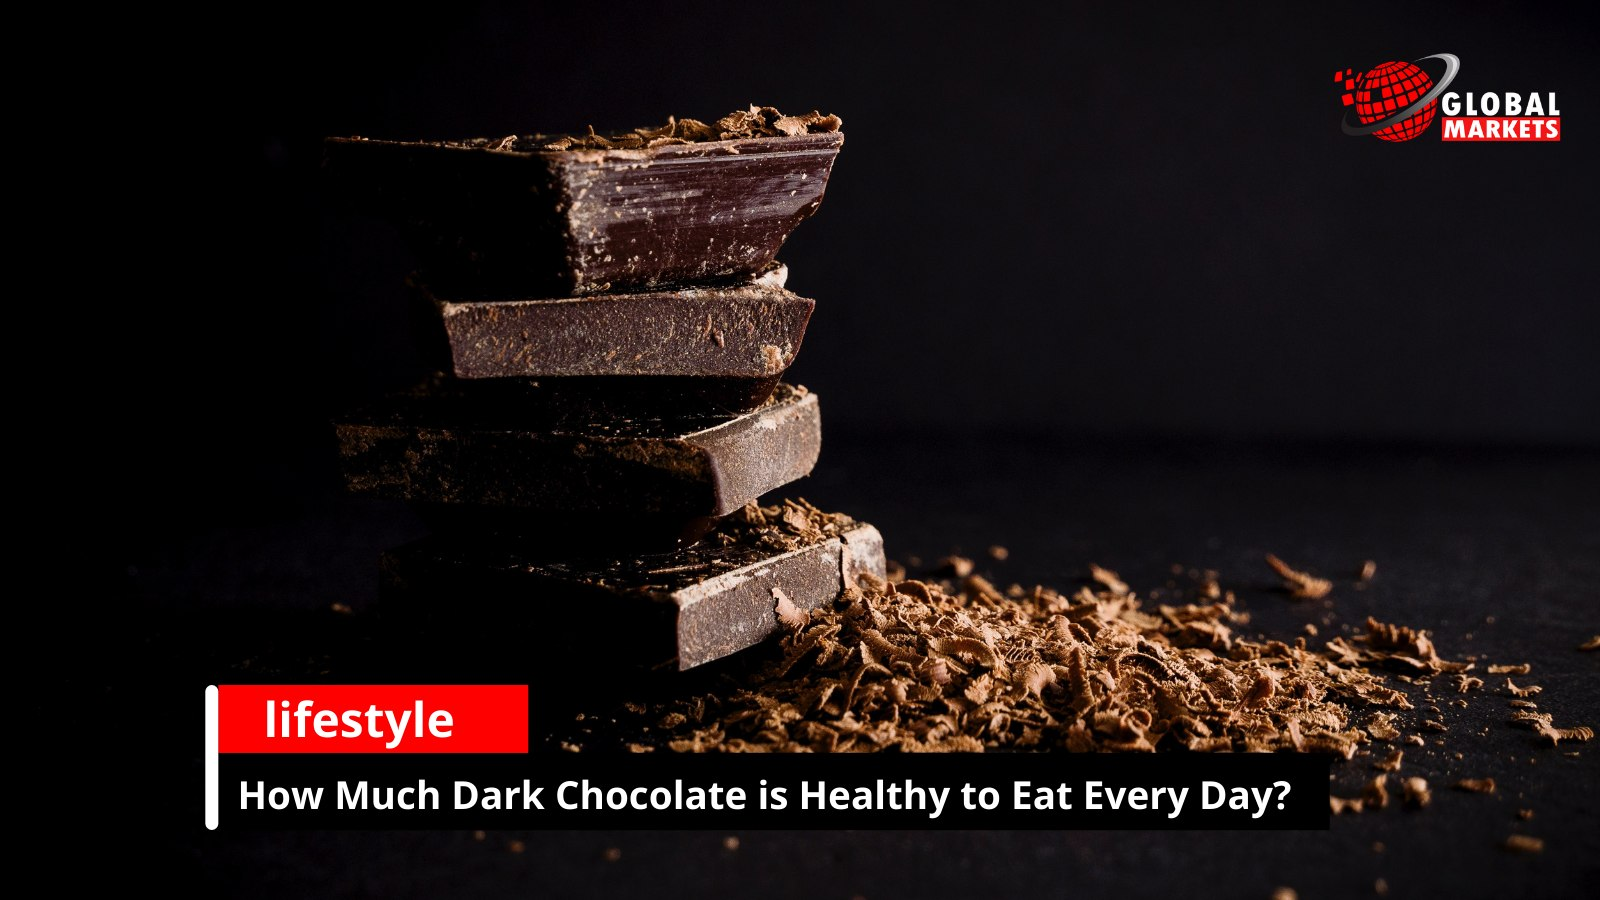 How Much Dark Chocolate is Healthy to Eat Every Day?